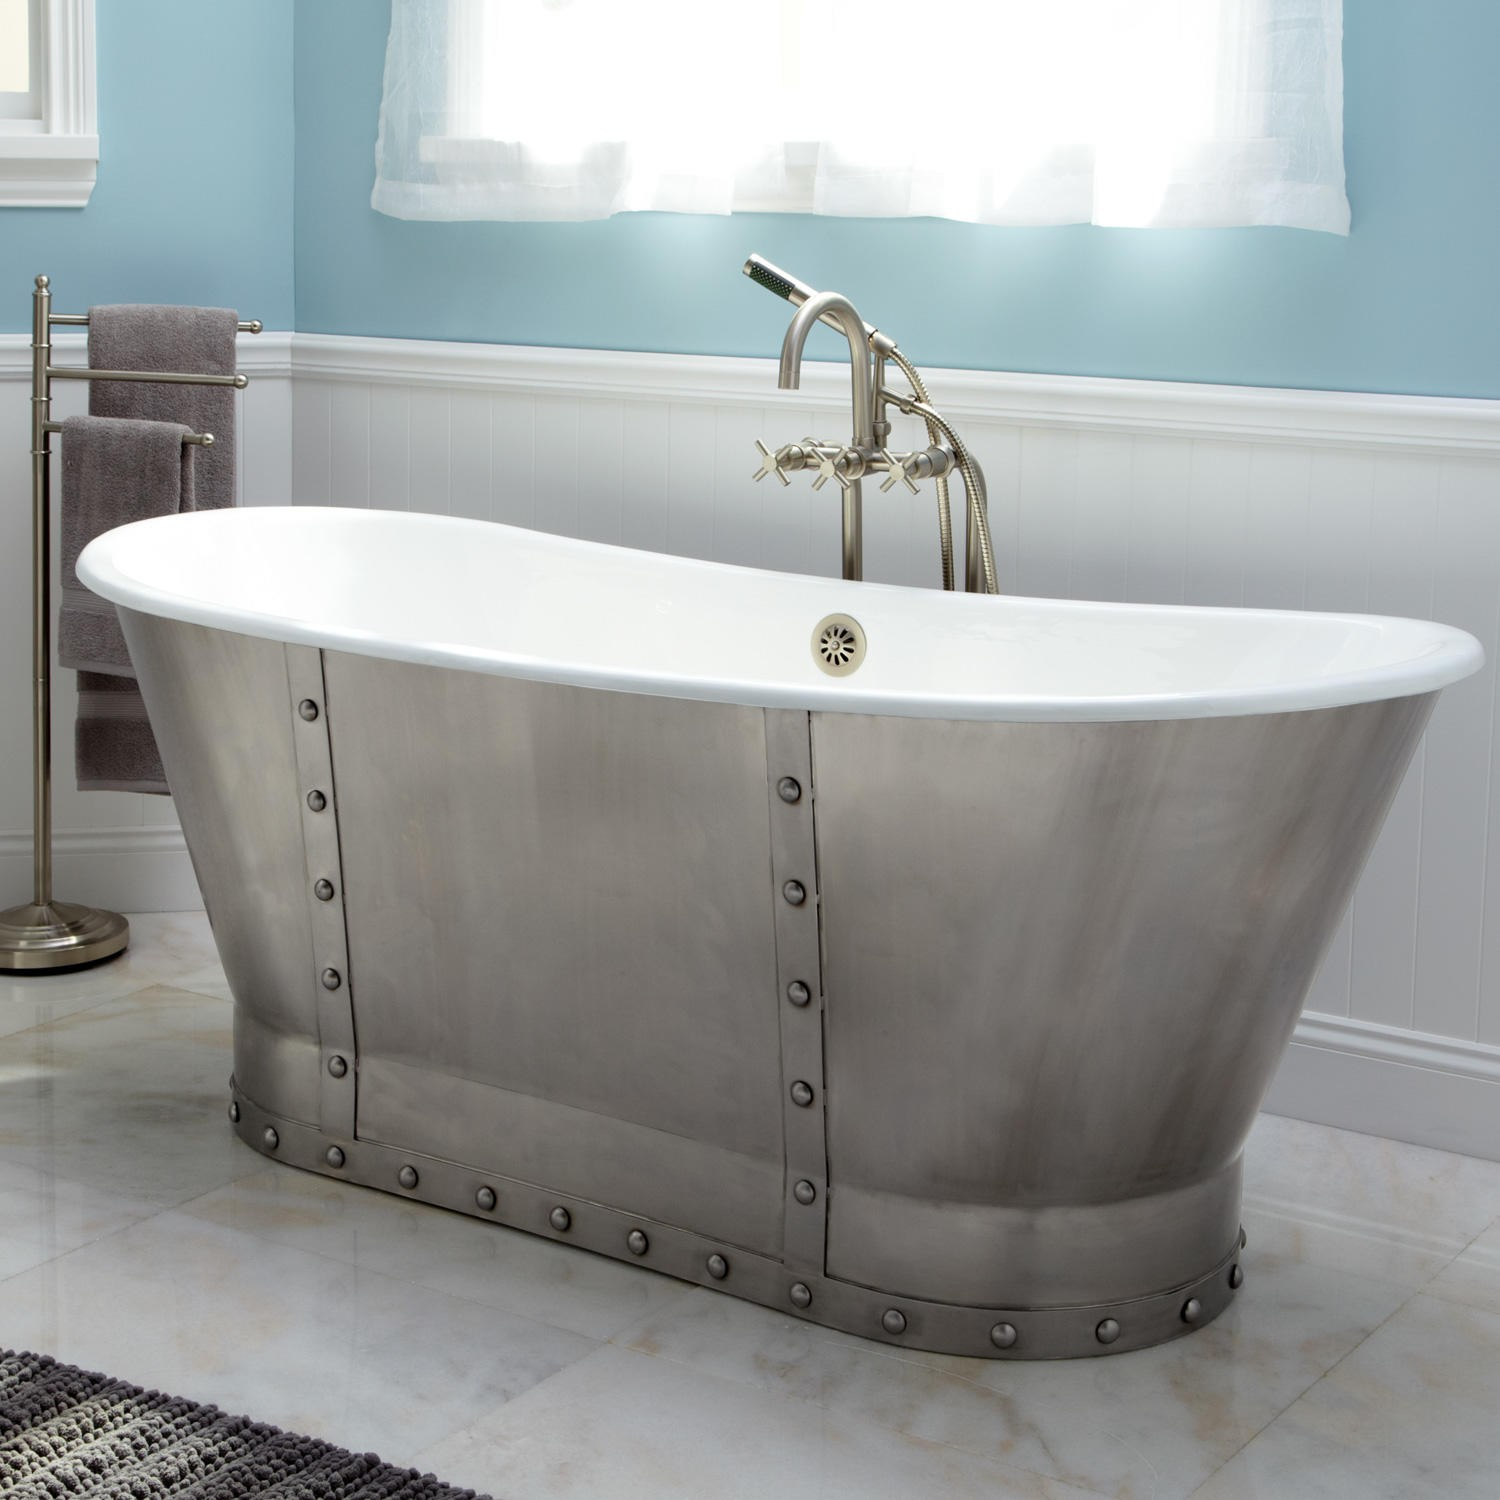 Superieur Porcelain Steel Bathtubs Bathtub Ideas For Dimensions 1500 X 1500